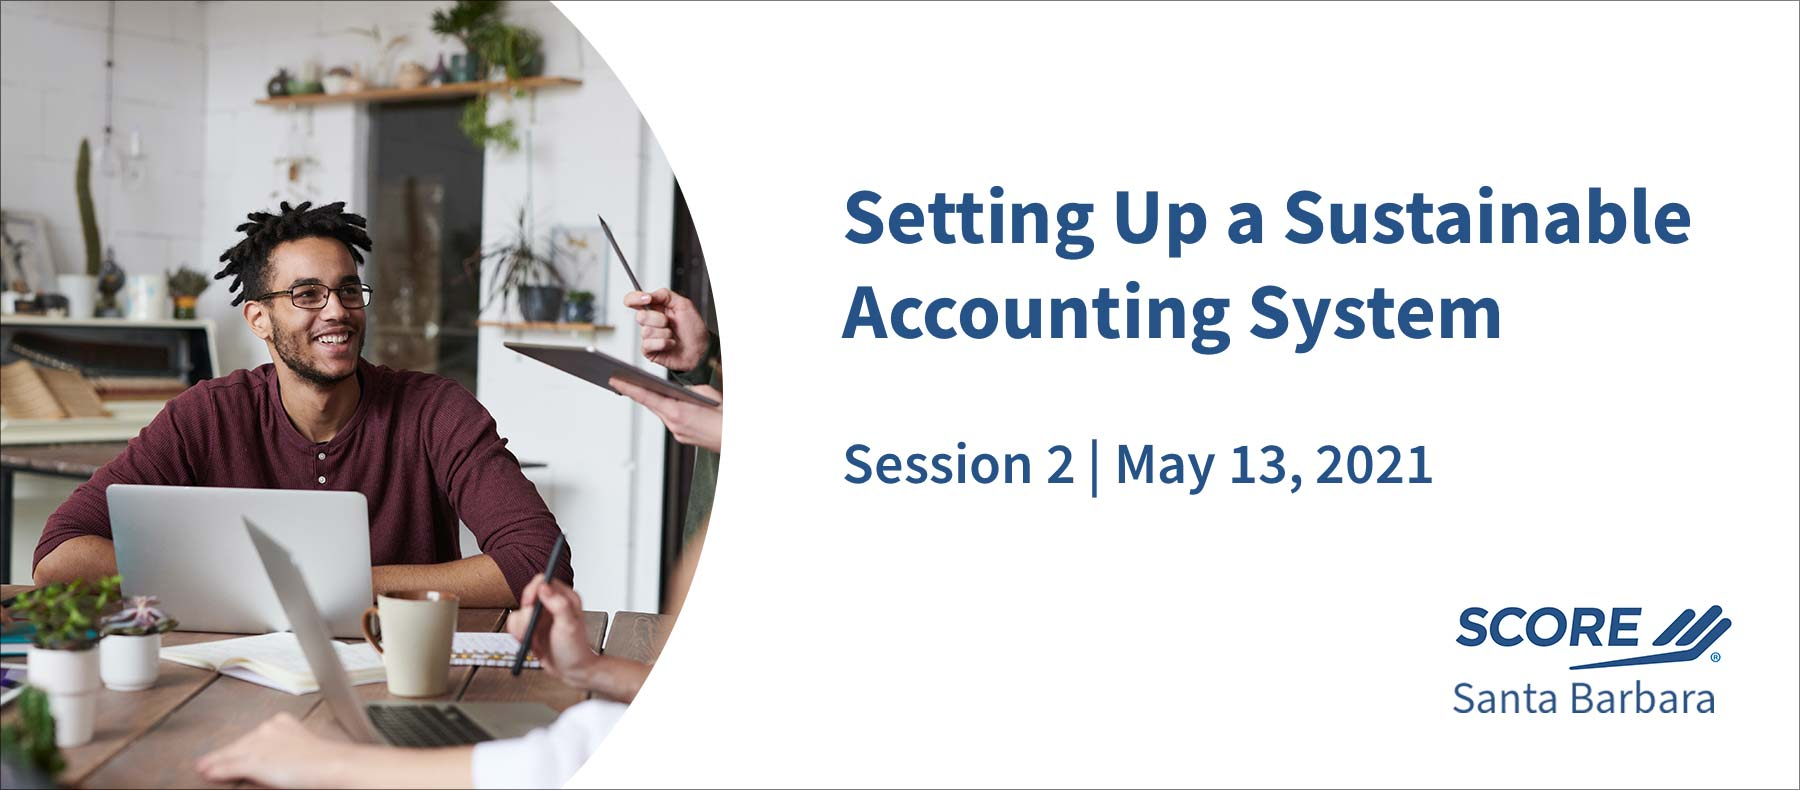 SCORE setting up accounting system session 2